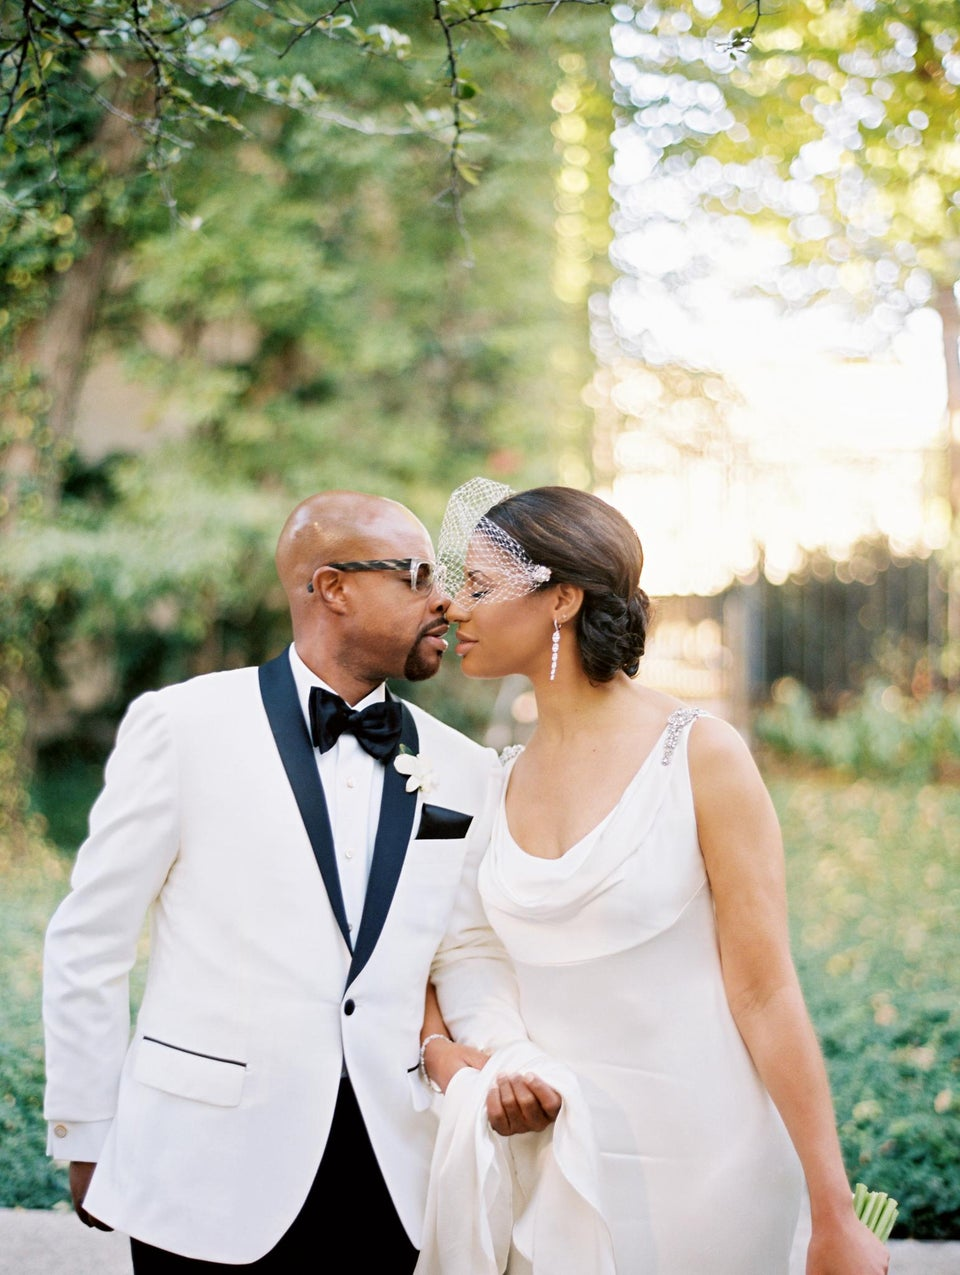 Bridal Bliss: Darilyn and Terrance's Chicago Wedding